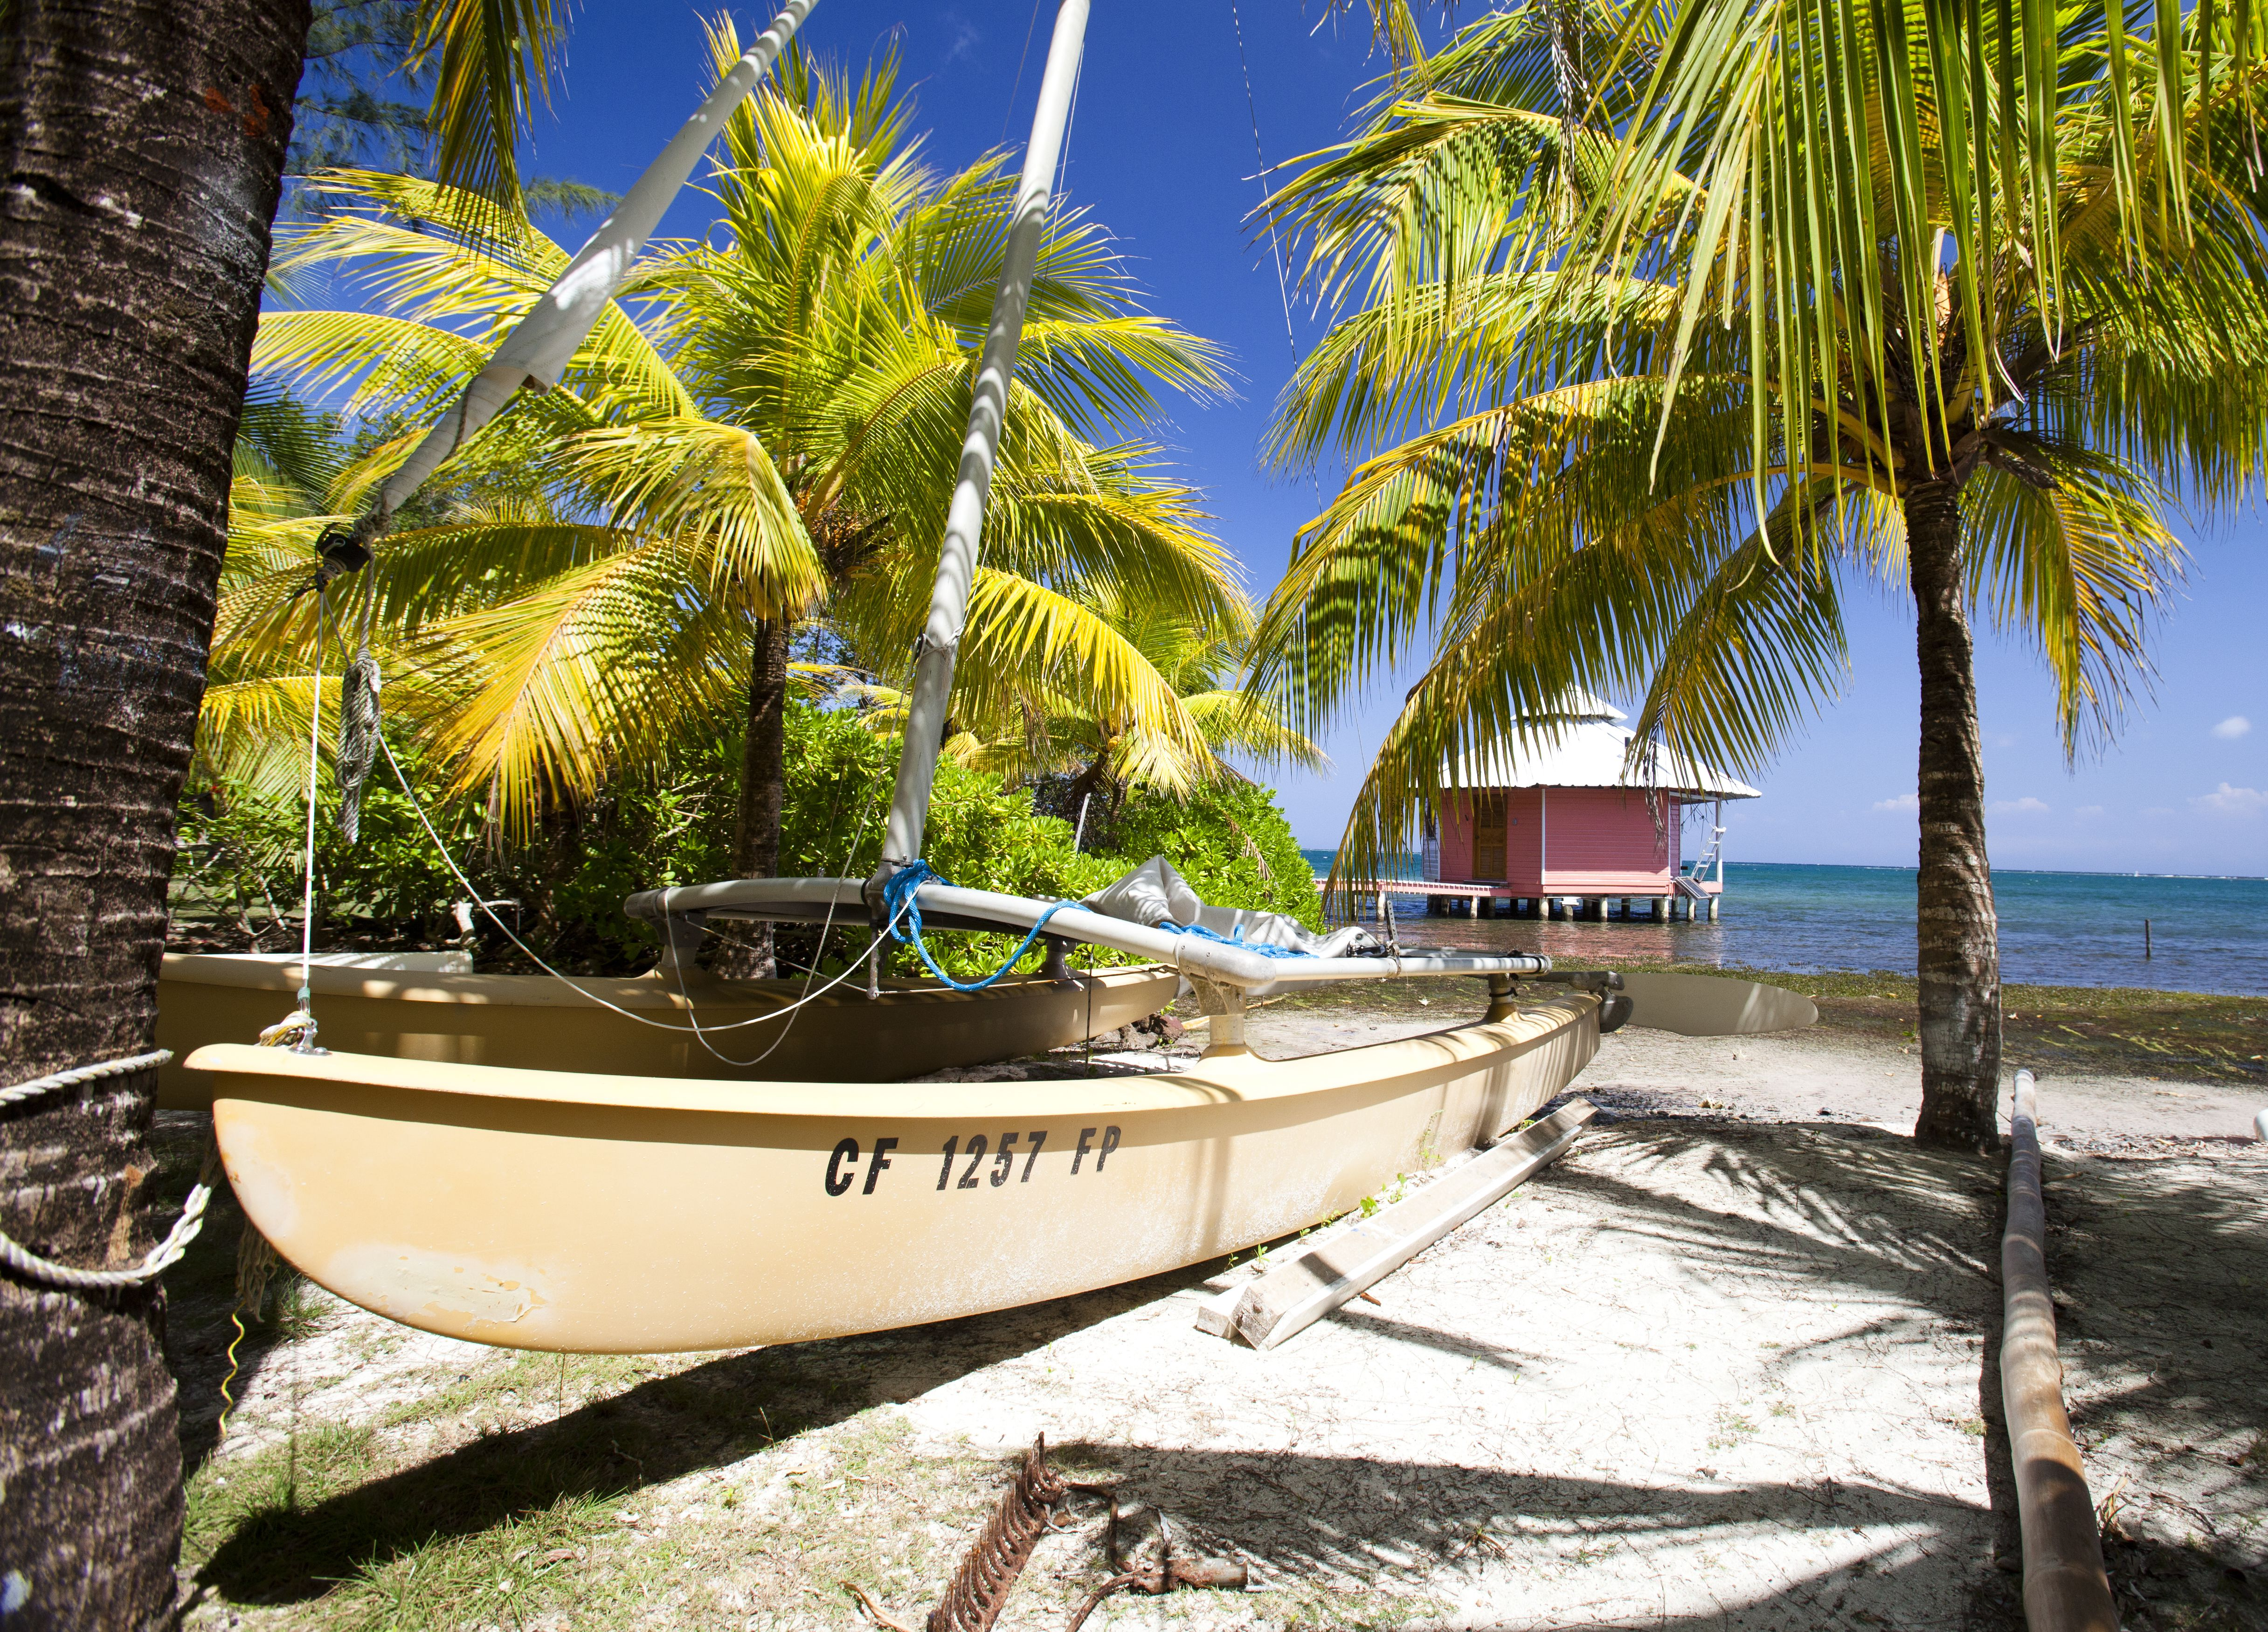 How many retired single woman are living in roatan as ex patsy